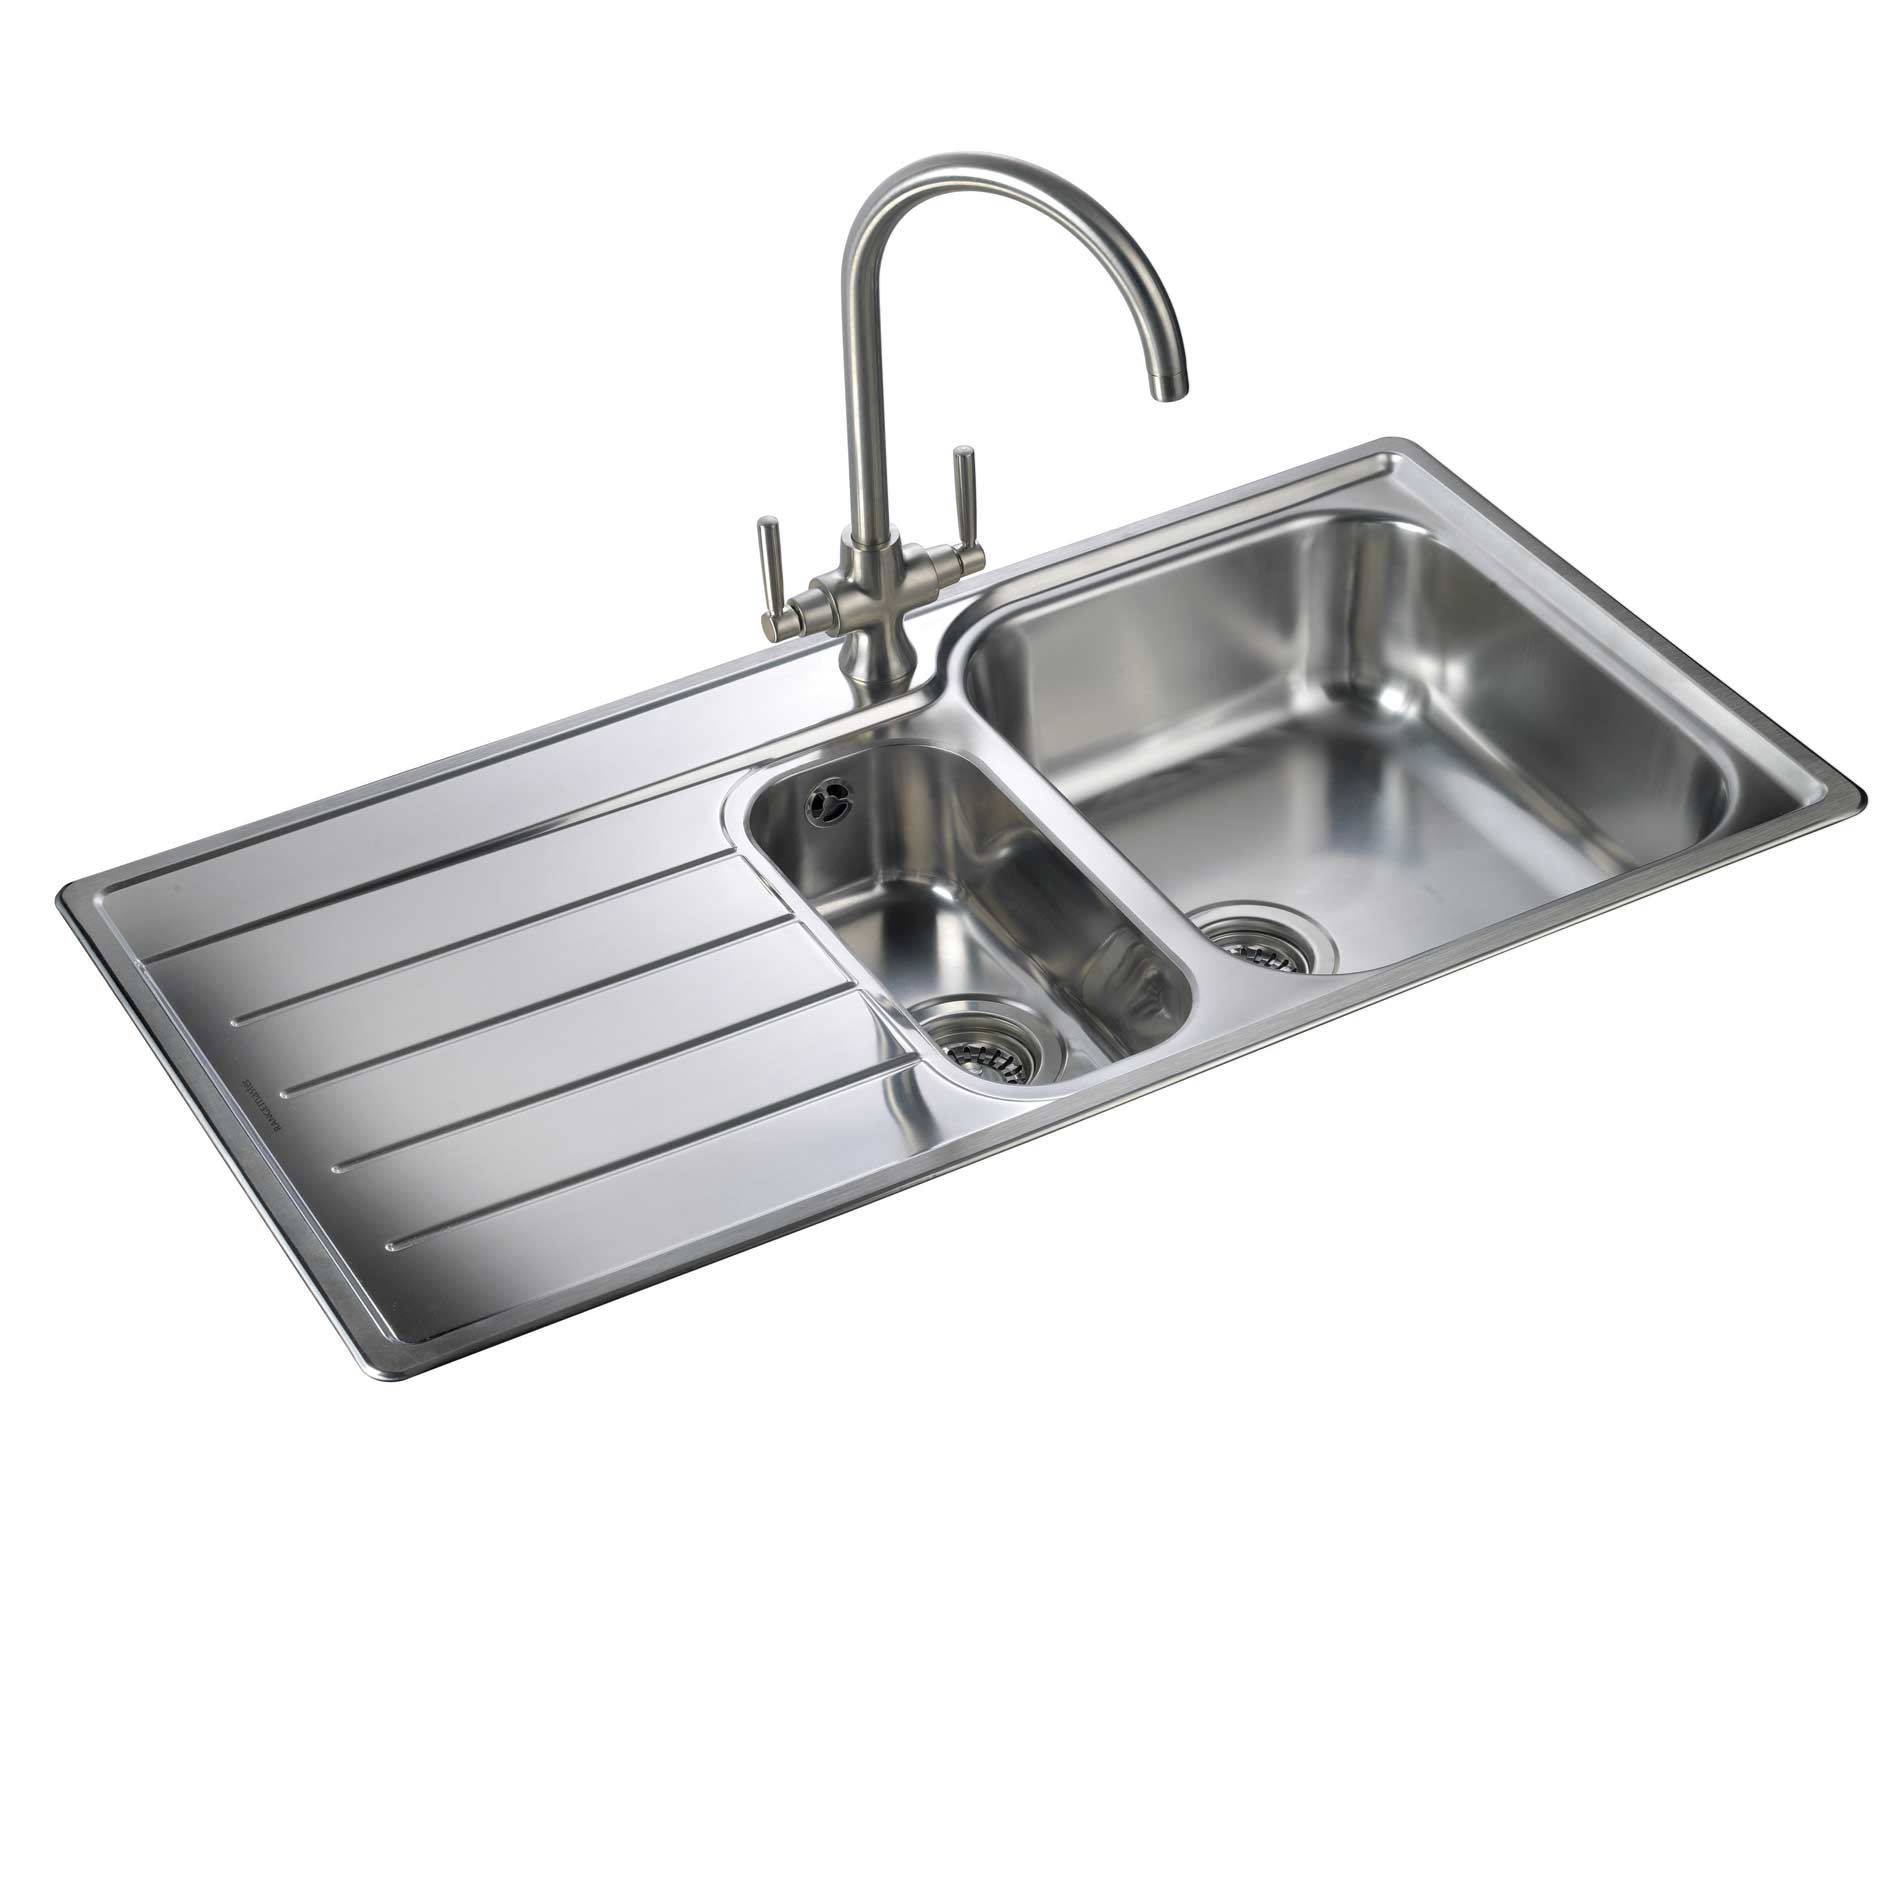 Kitchen Sinks Rangemaster Oakland Ol9852 Stainless Steel Sink Kitchen